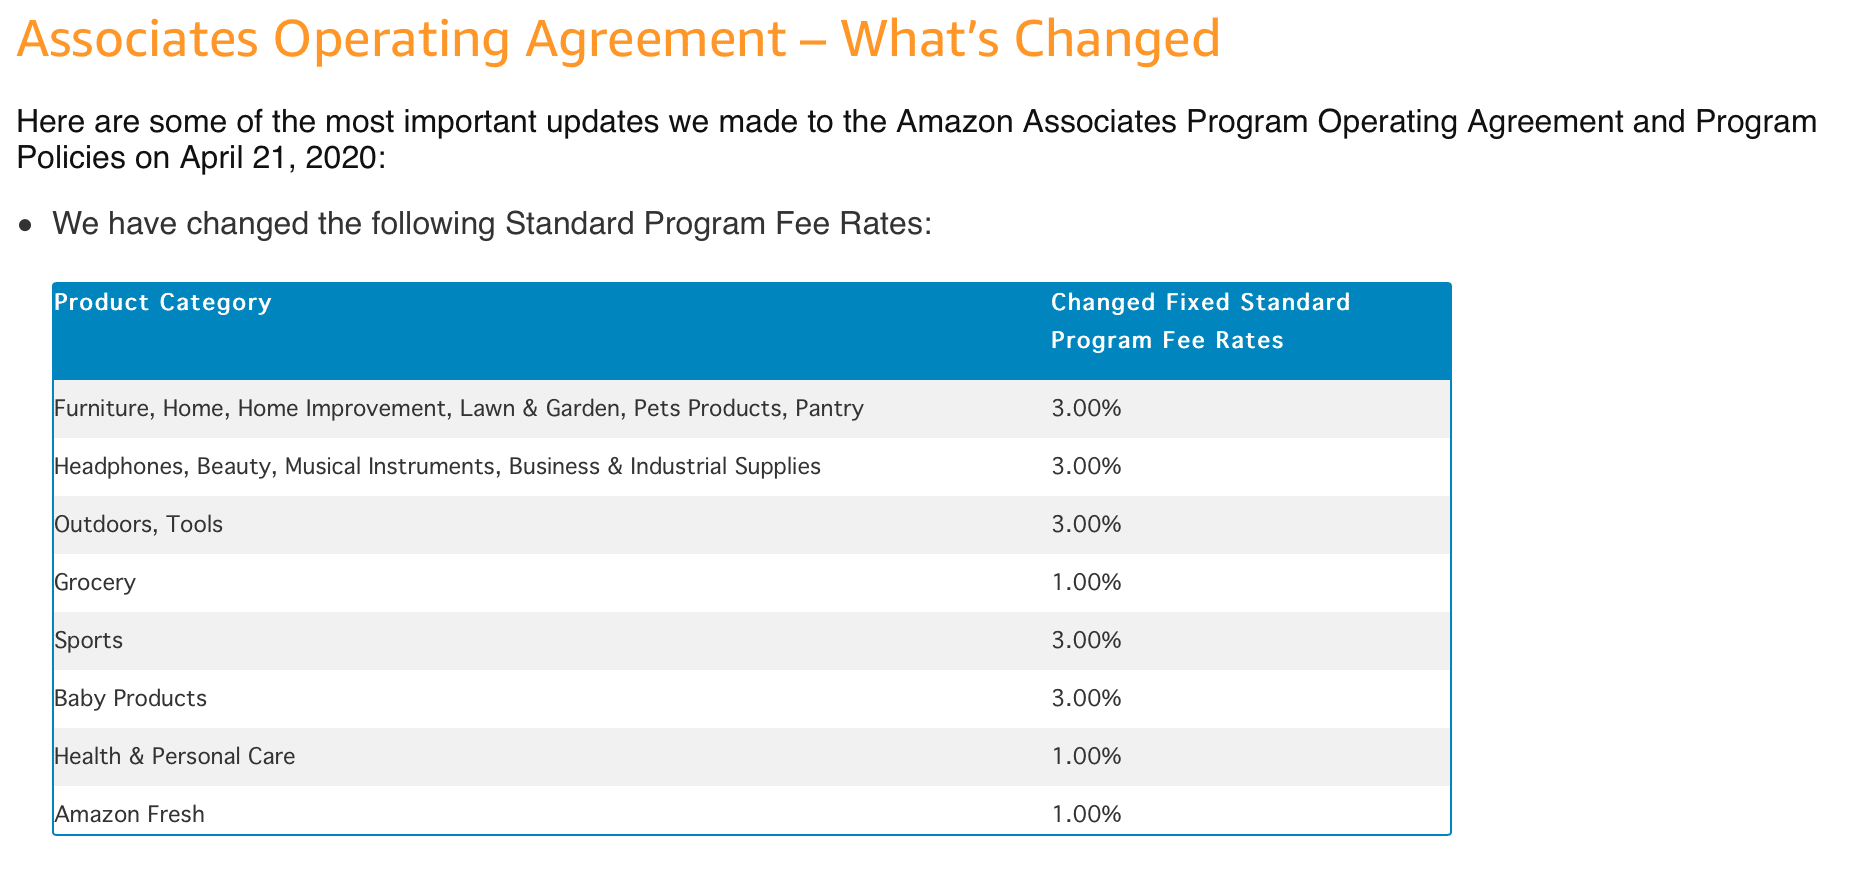 Associates Operating Agreement - What's Changing